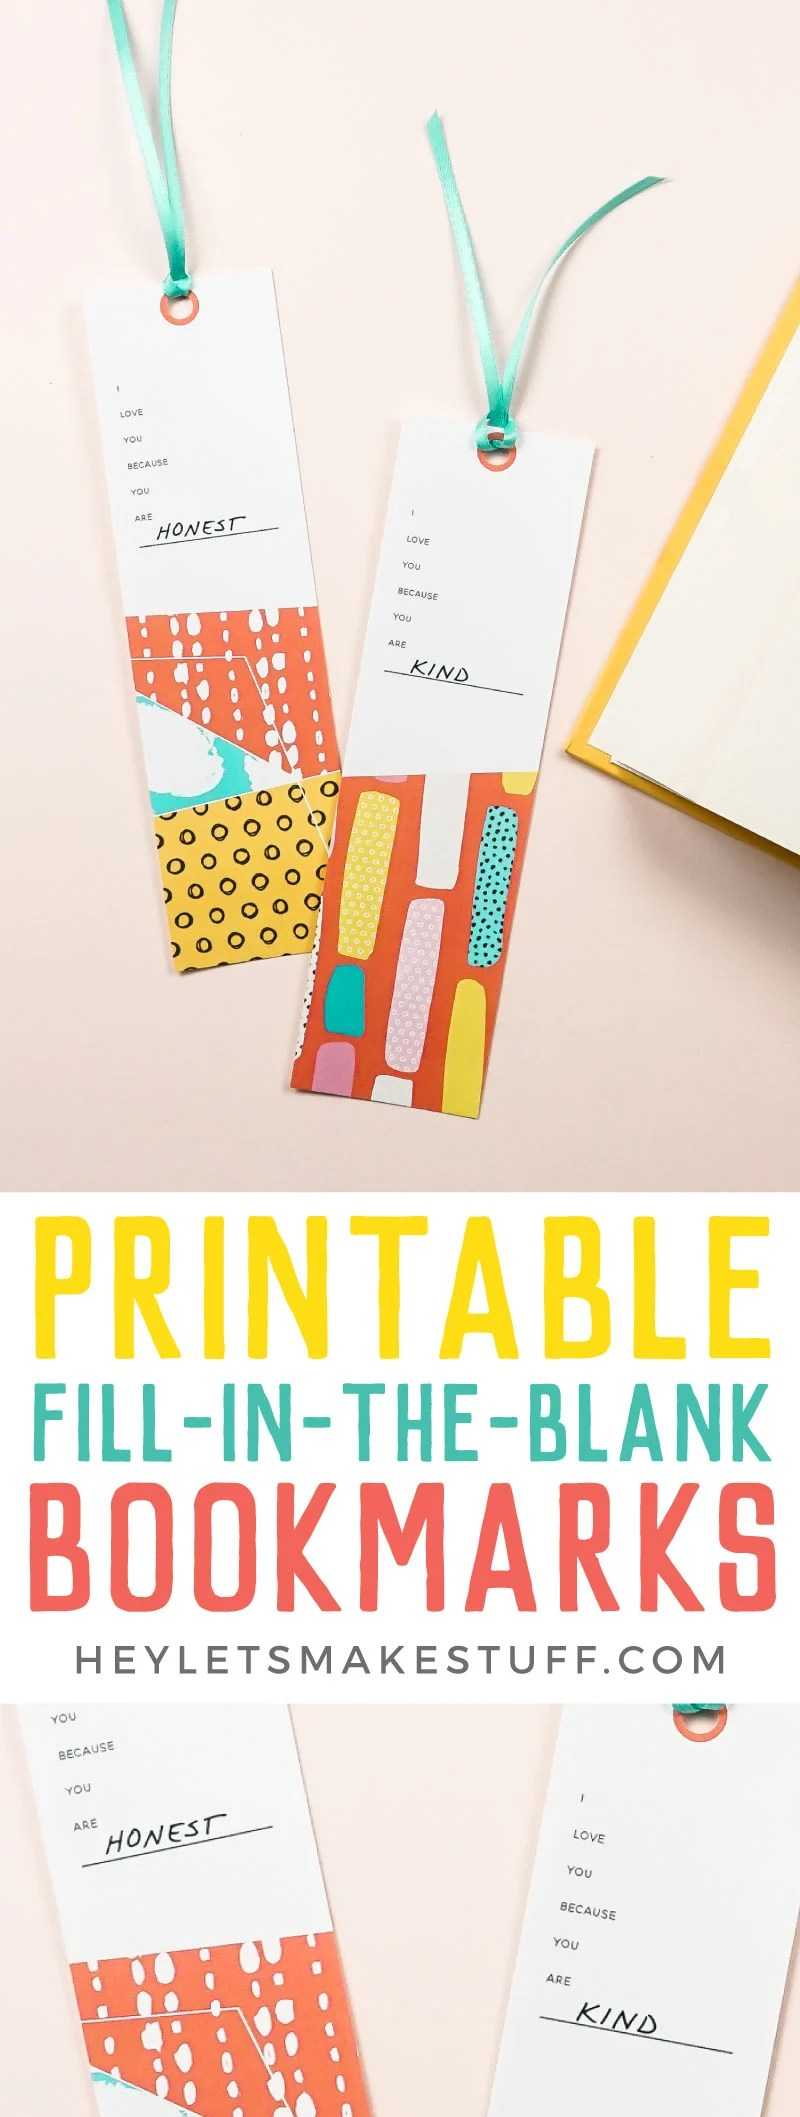 """Tell someone they are special with these sweet printable bookmarks! Just print and fill in the blank: """"I love you because you are_____"""" and gift to your favorite bookworm! via @heyletsmakestuf"""